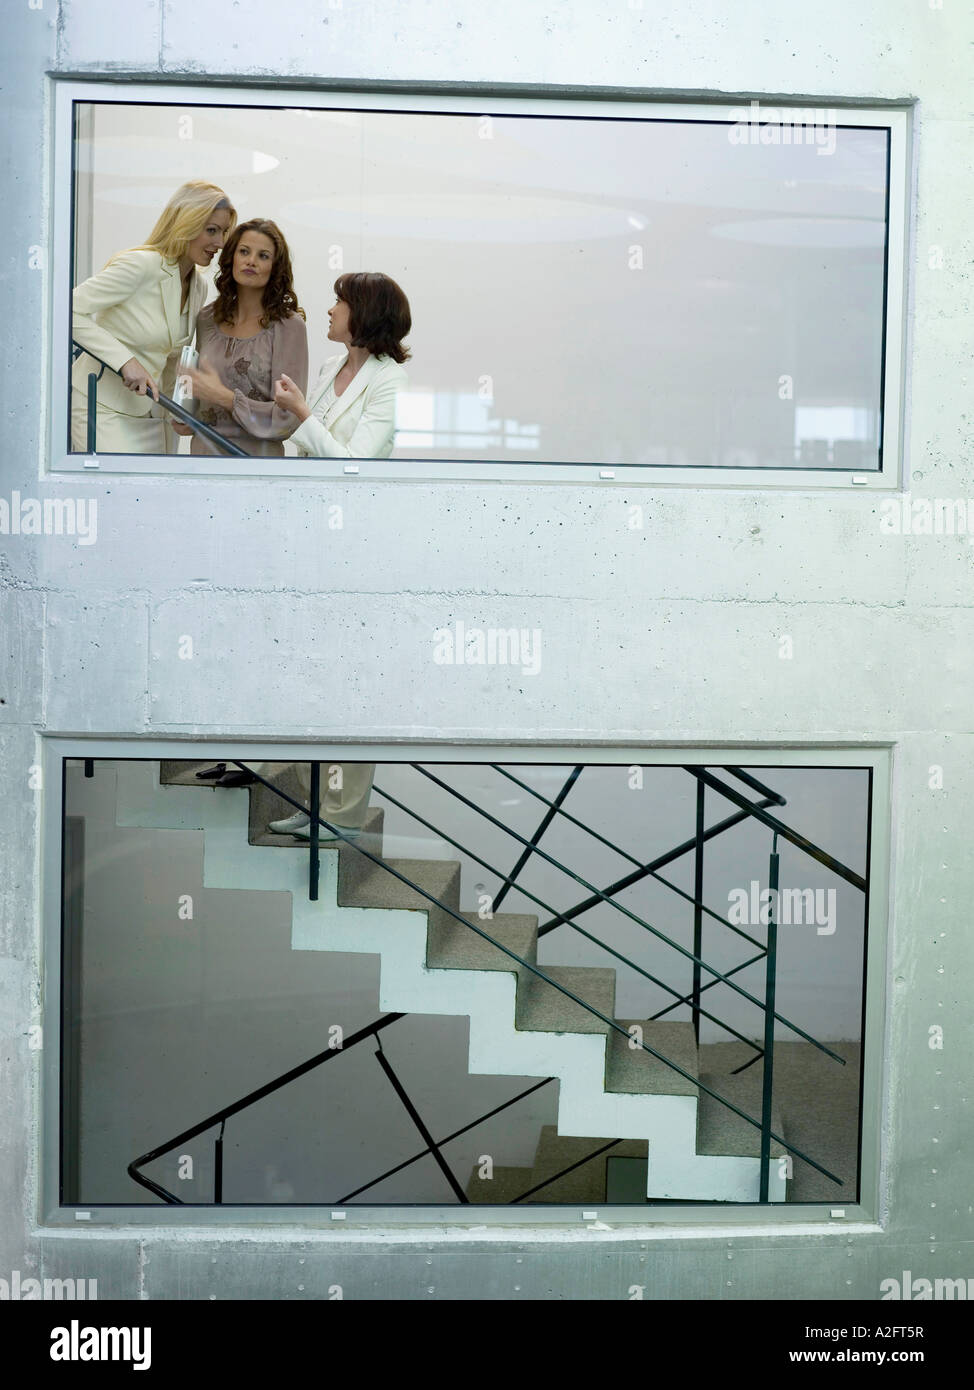 Woman on staircase - Stock Image